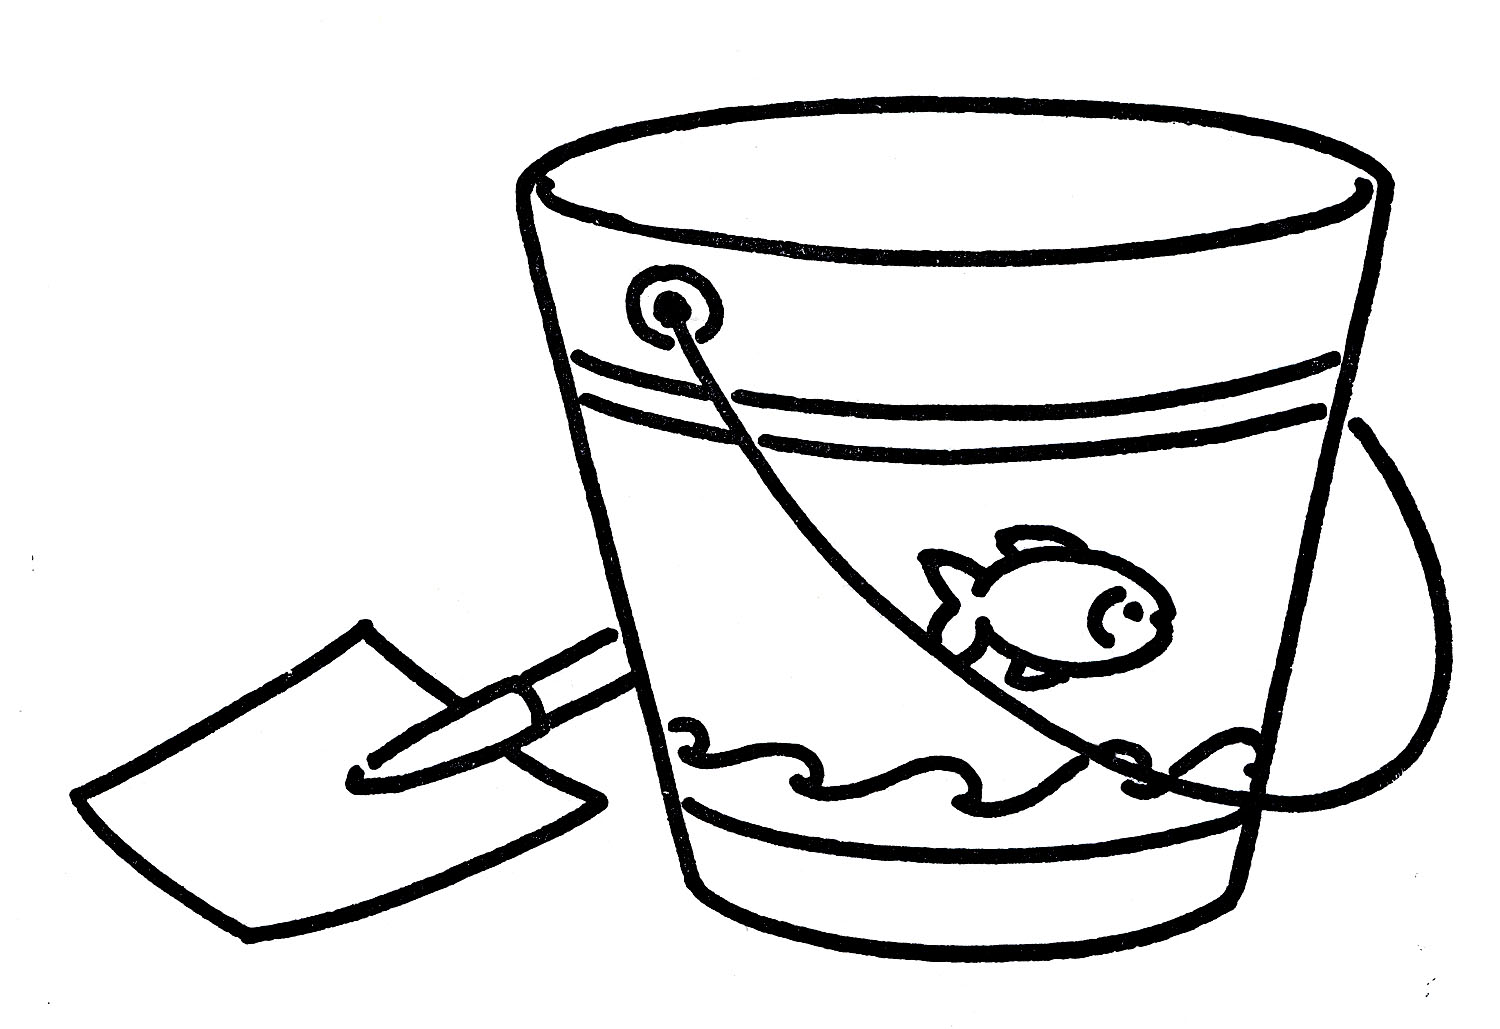 Vintage Line Art Shove And Pail